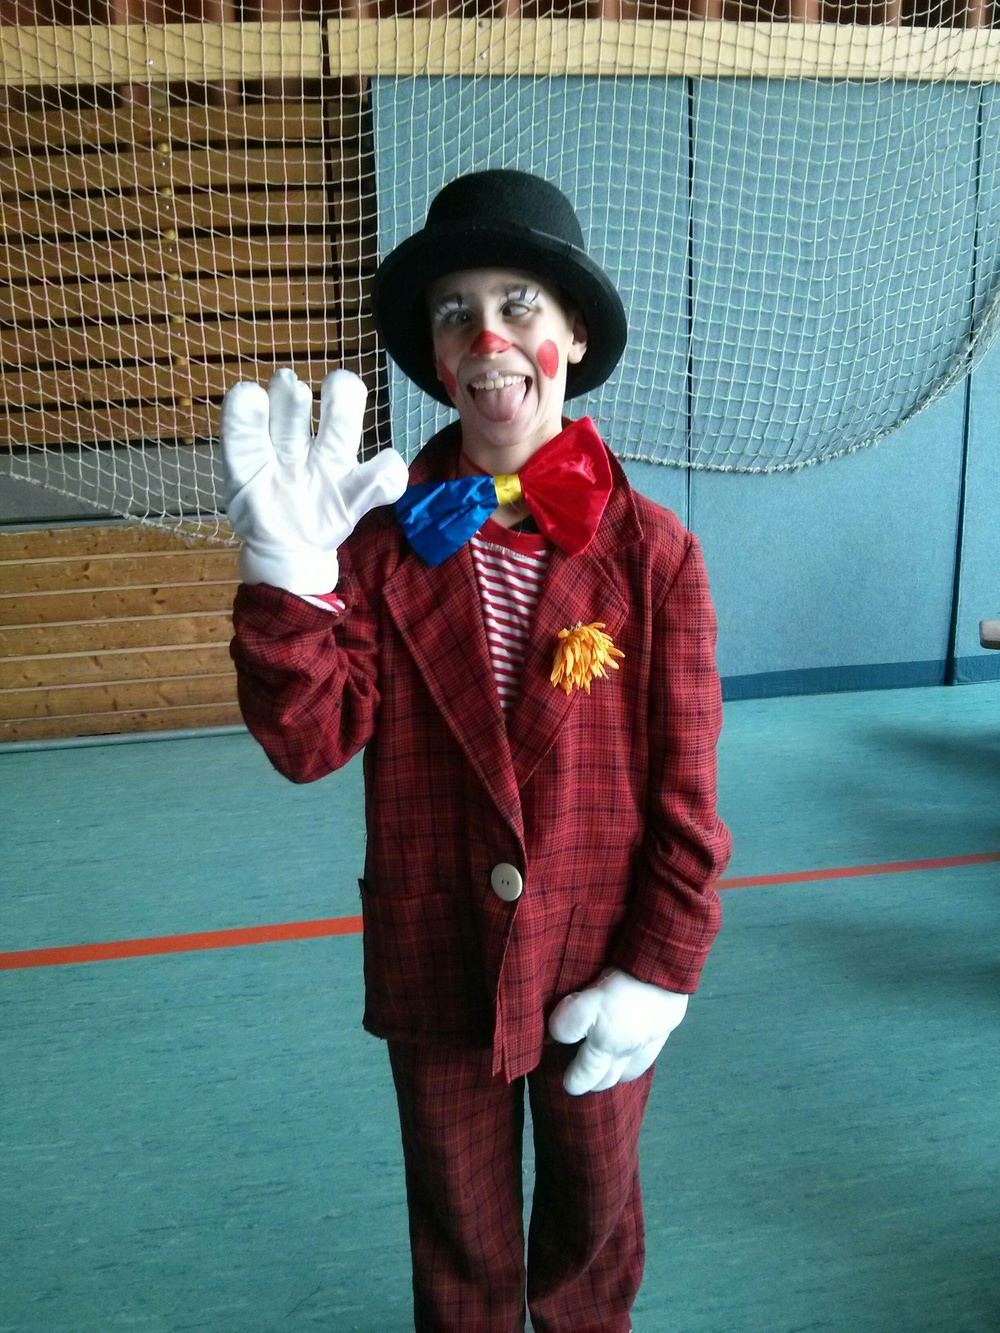 Ready for his clown performance